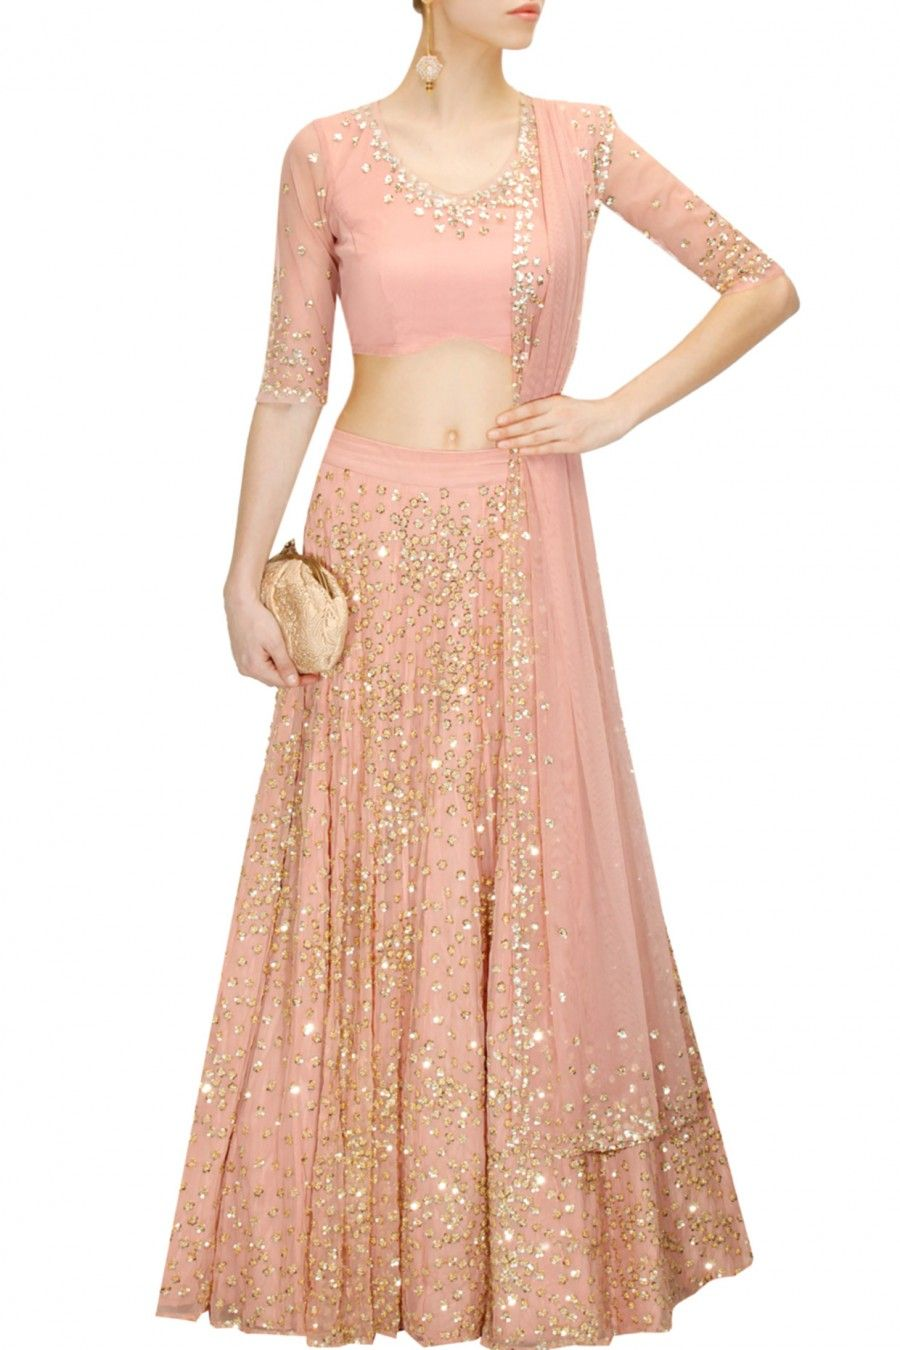 38161923d8 ASTHA NARANG Peach sequins and beads embroidered lehenga set available only  at Pernia's Pop-Up Shop.